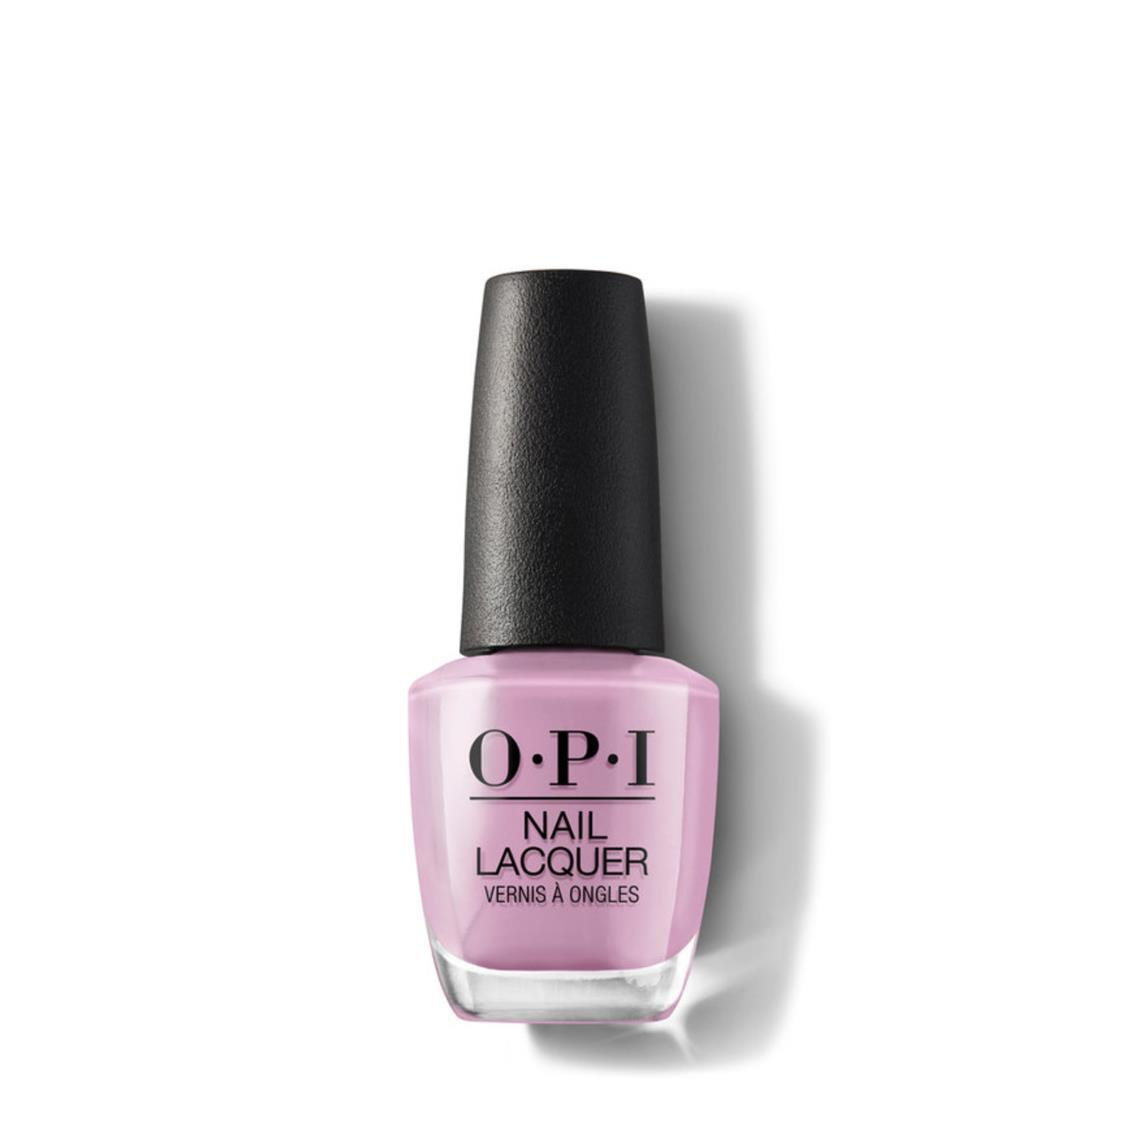 Opi Fall Collection 2018 Nail Lacquer Seven Wonders Of Opi 15ml